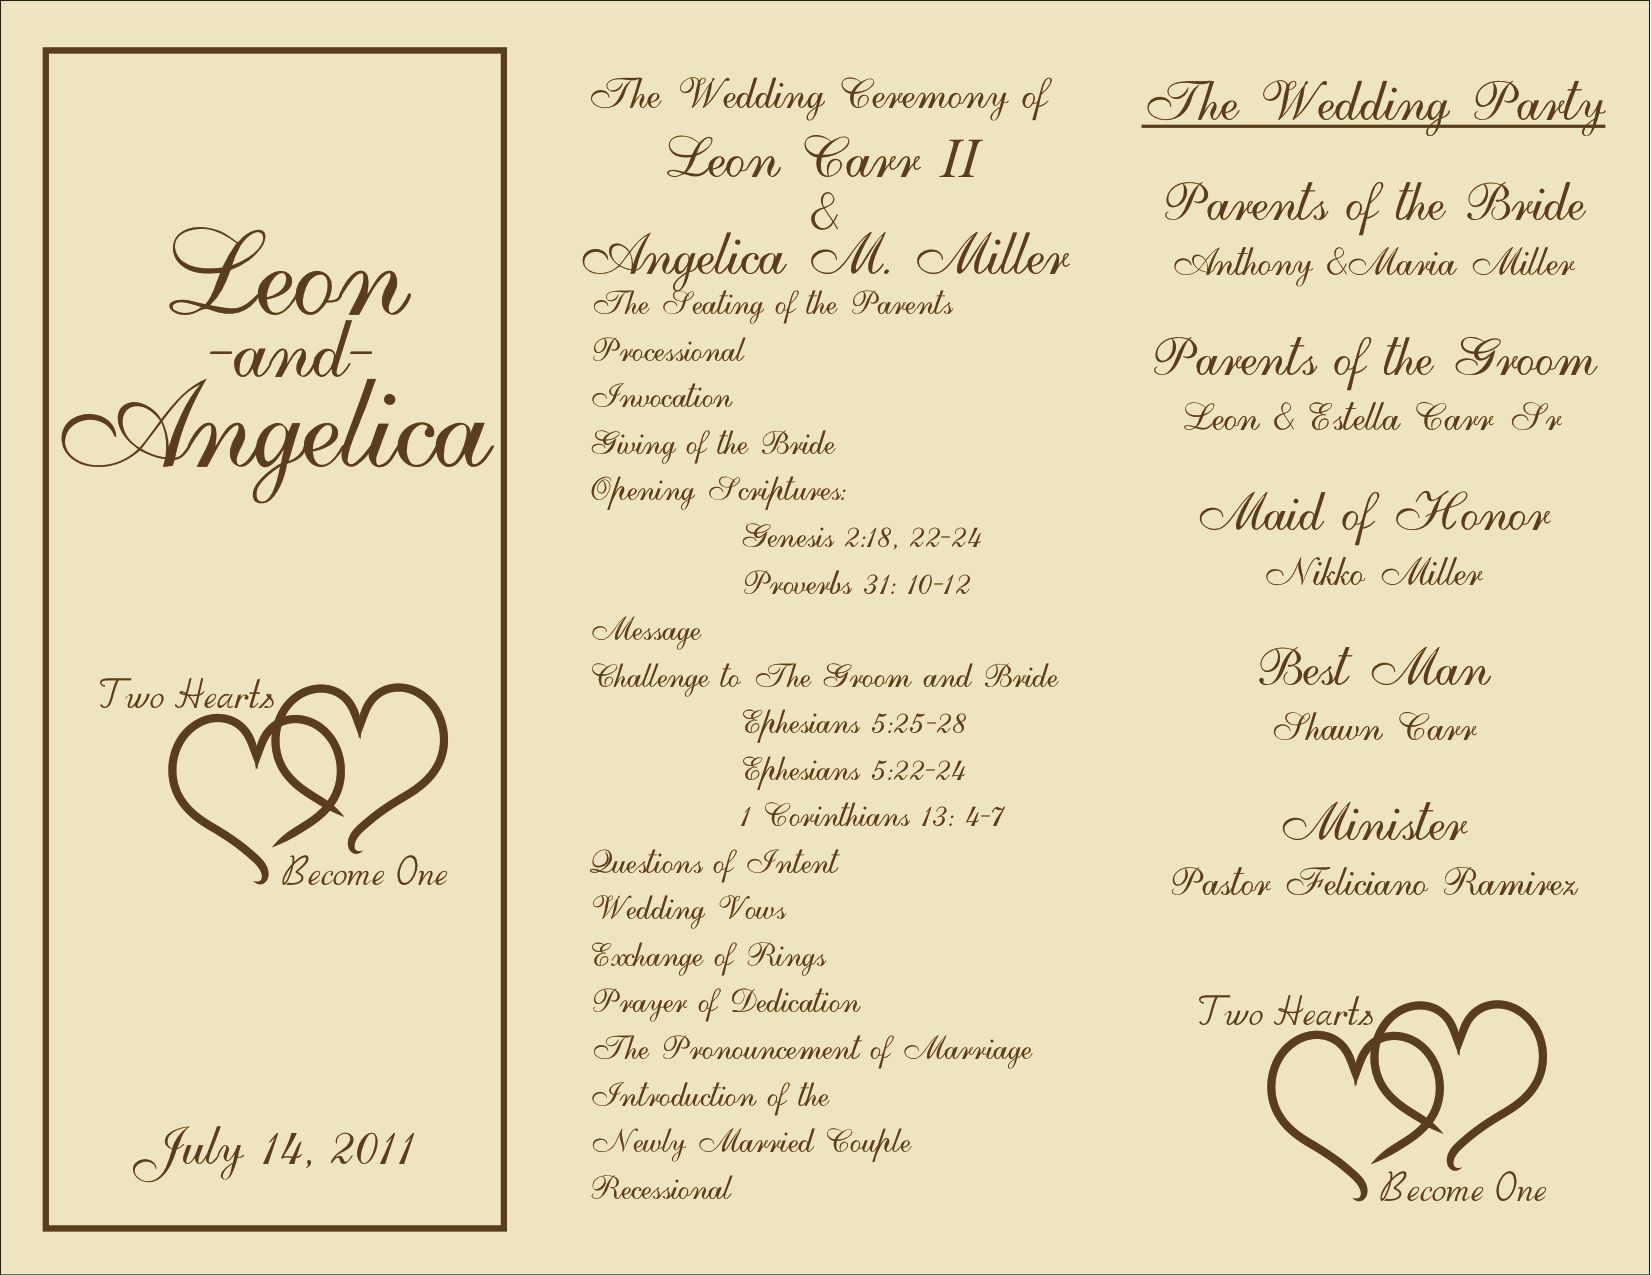 Free printable wedding programs templates sample wedding free printable wedding programs templates sample wedding ceremony programs junglespirit Choice Image